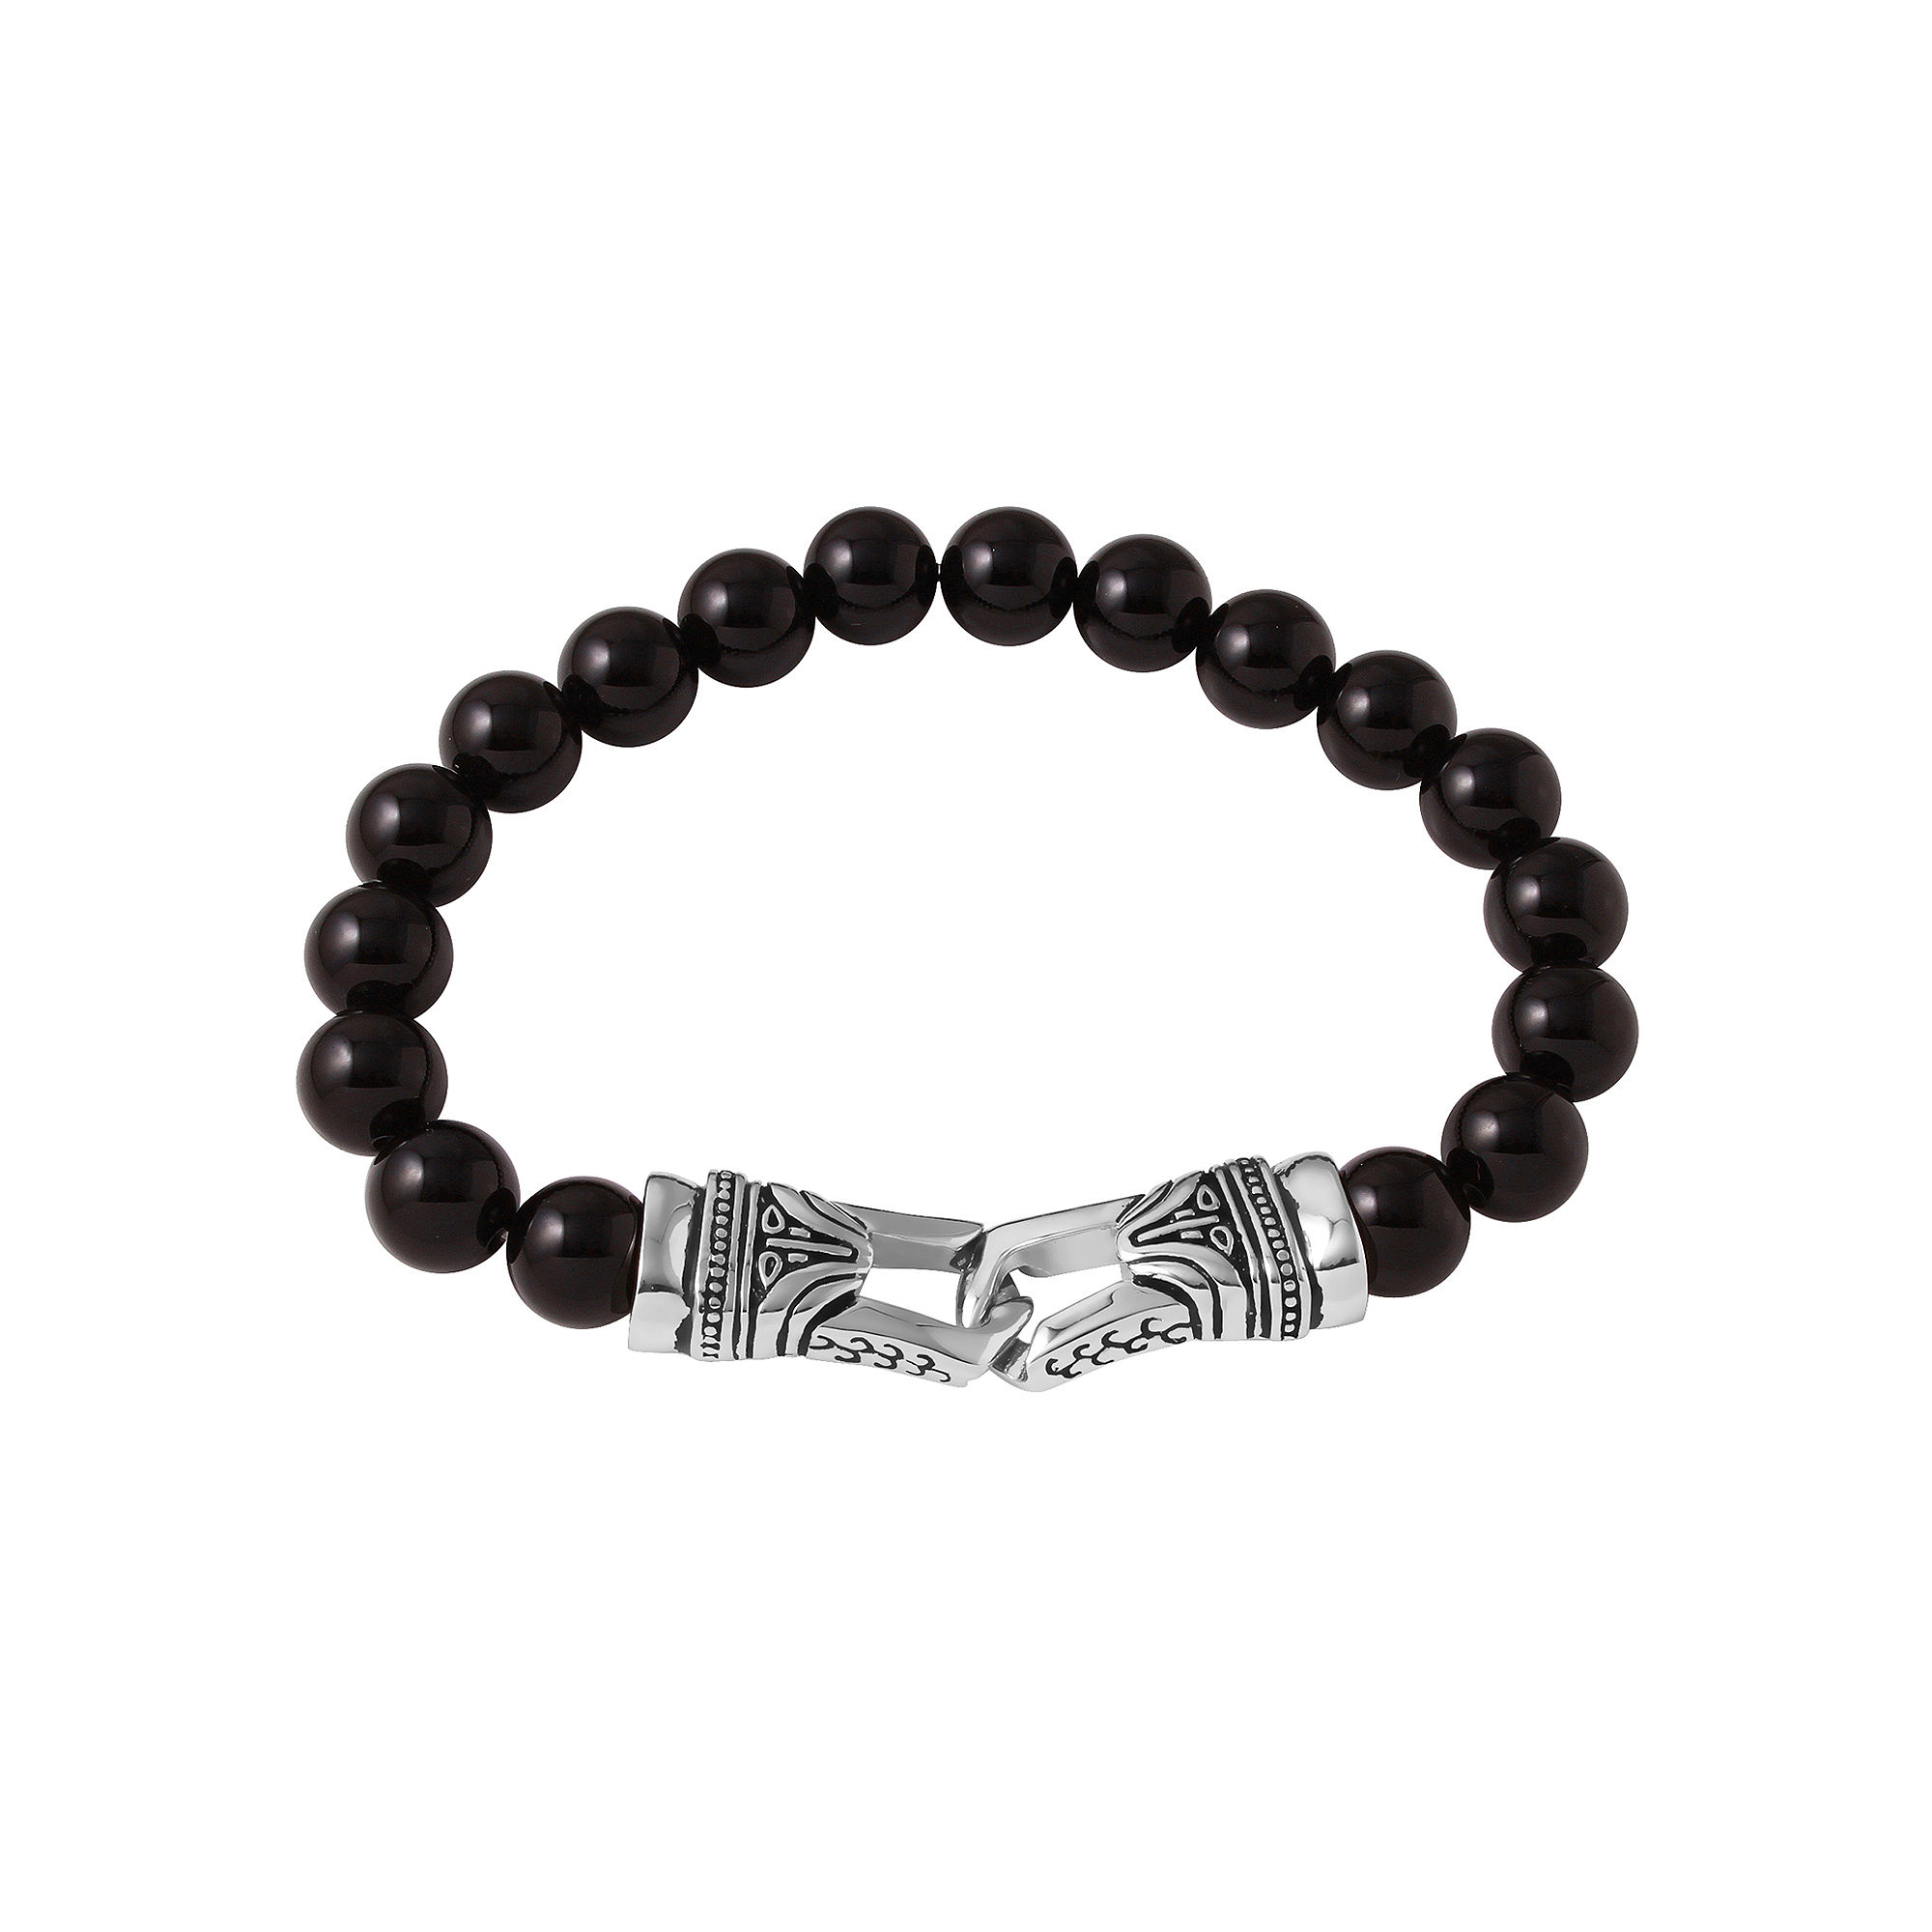 Mens Black Agate Bead and Stainless Steel Bracelet